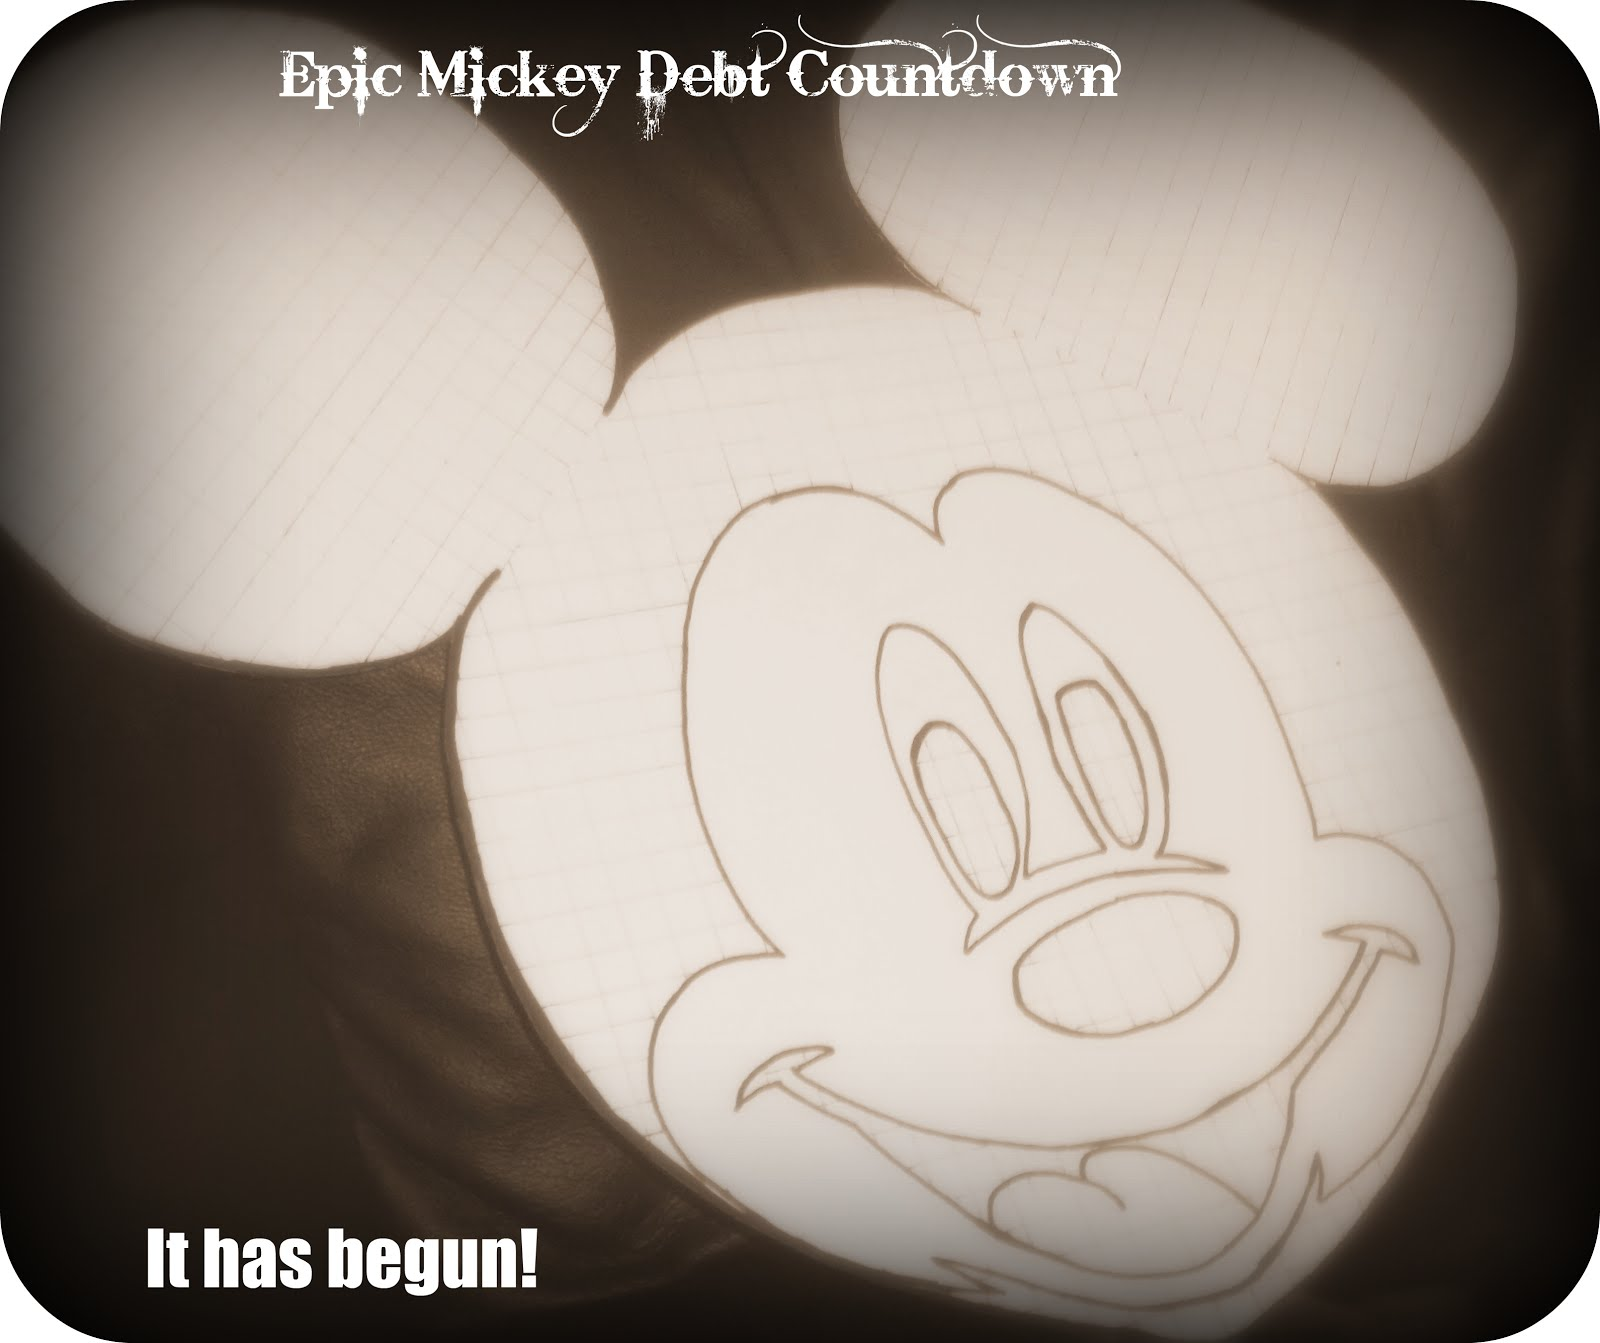 Epic Mickey Debt Count Down